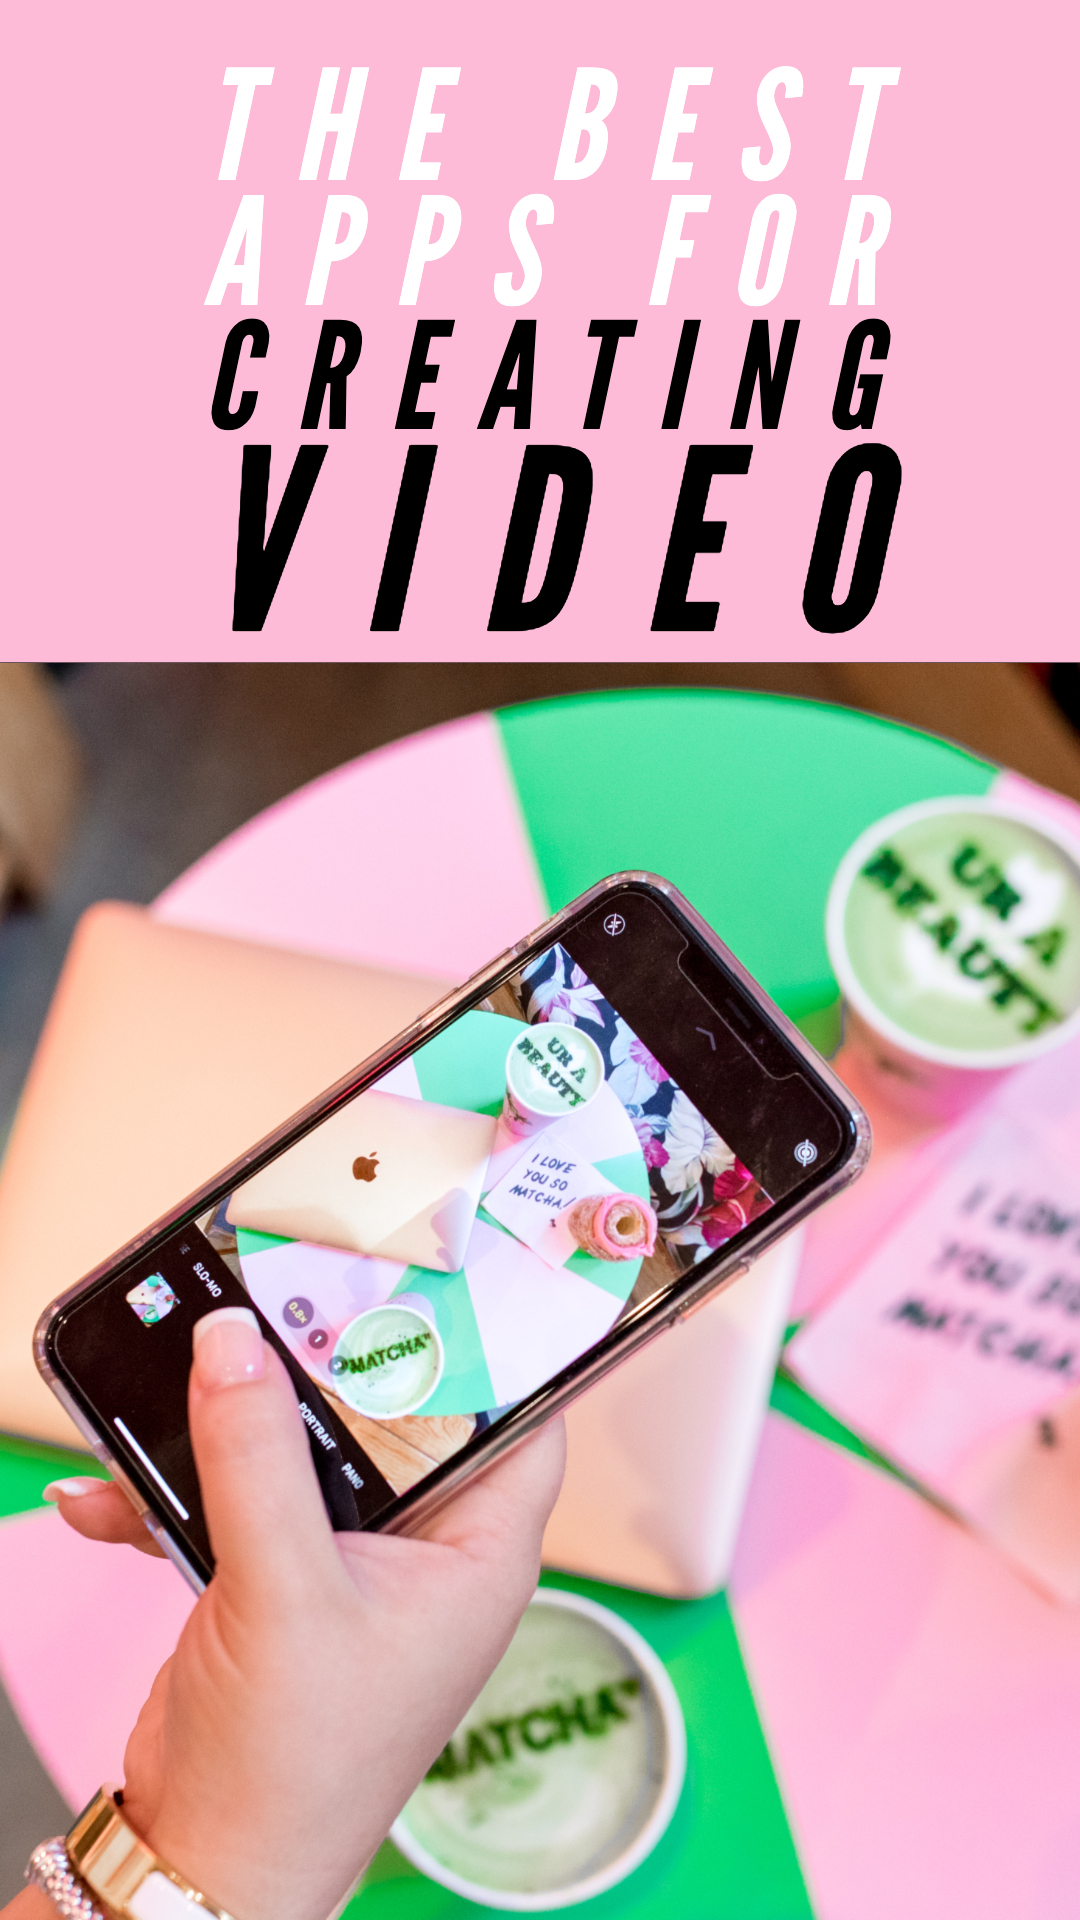 The best apps for creating video